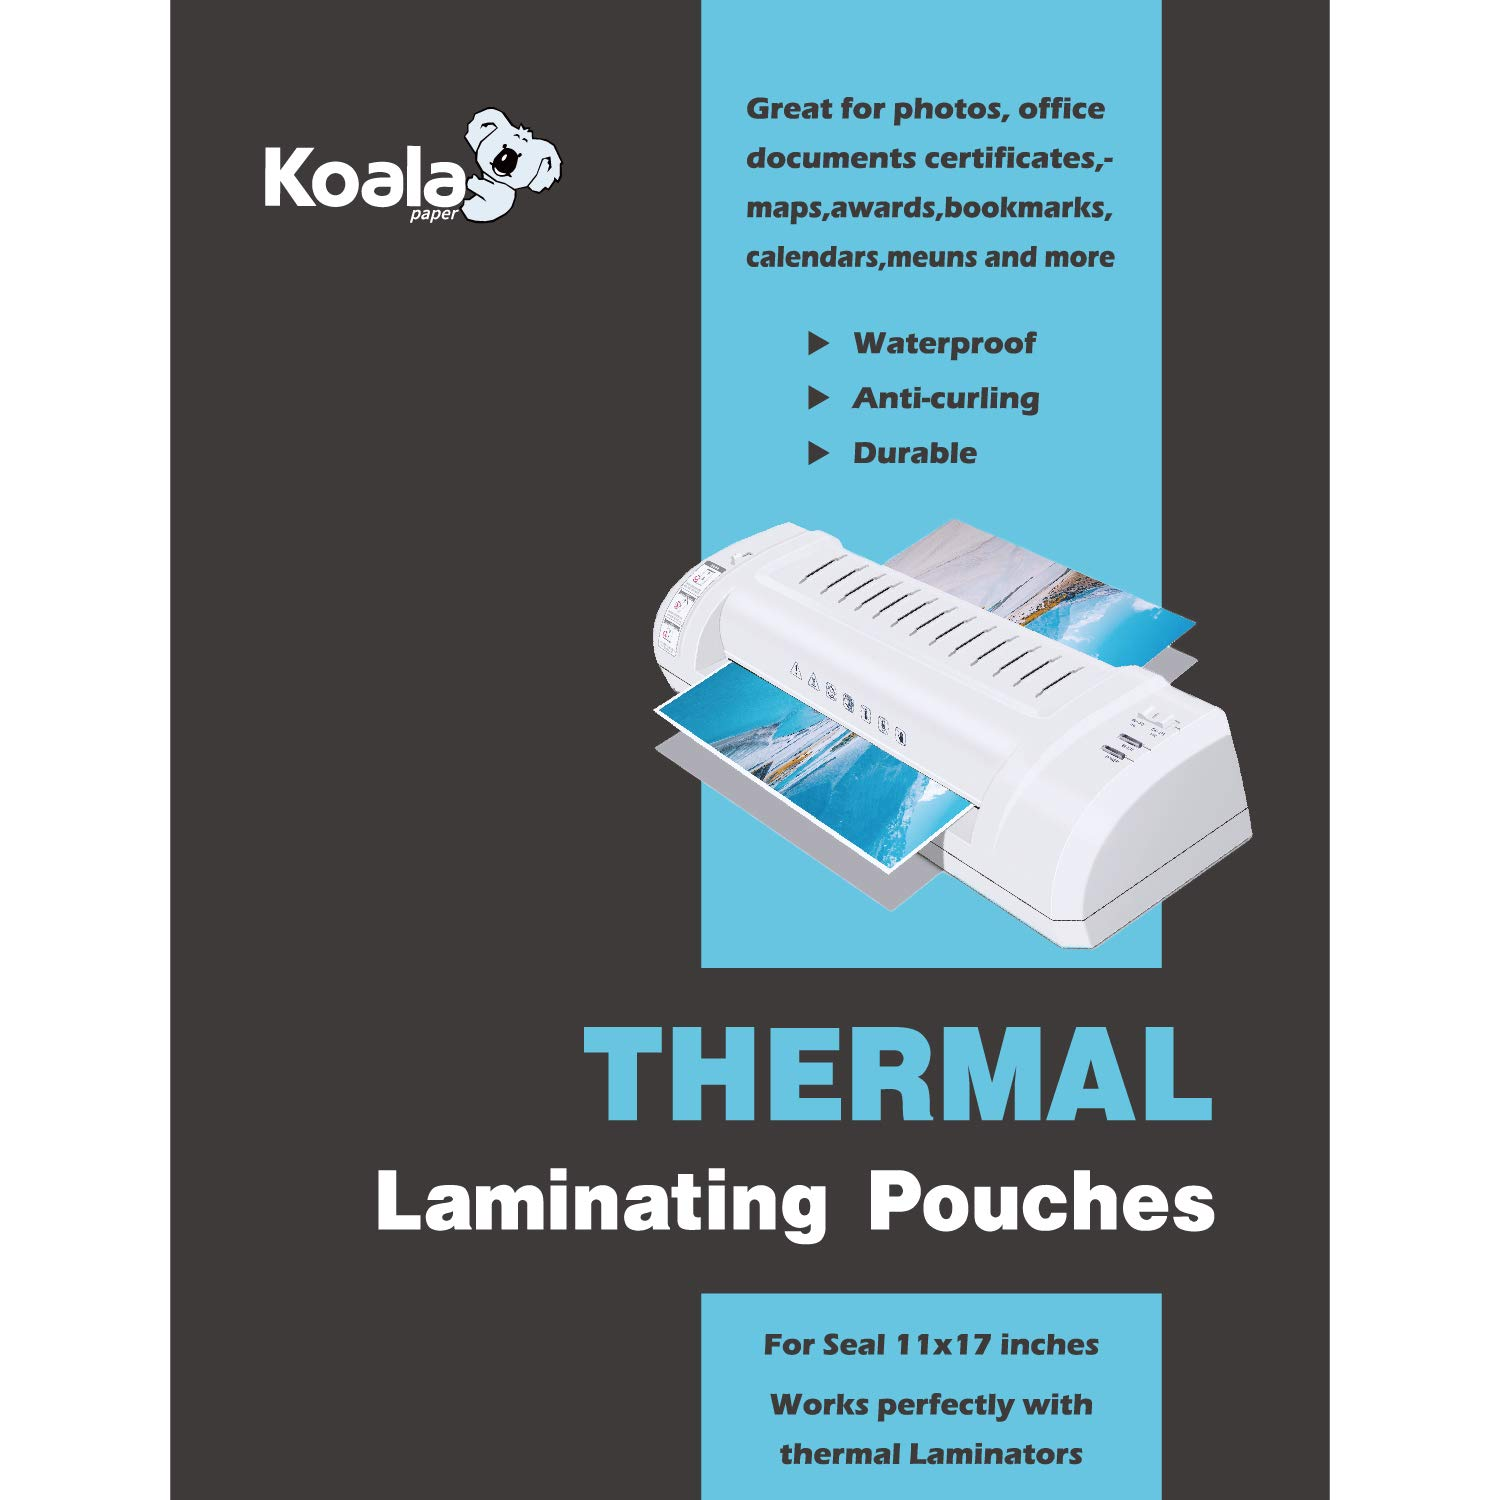 Koala Clear Thermal Laminating Pouches 5 mil 11.5x17.5 Inches for Seal 11x17 Photos 50 Sheets